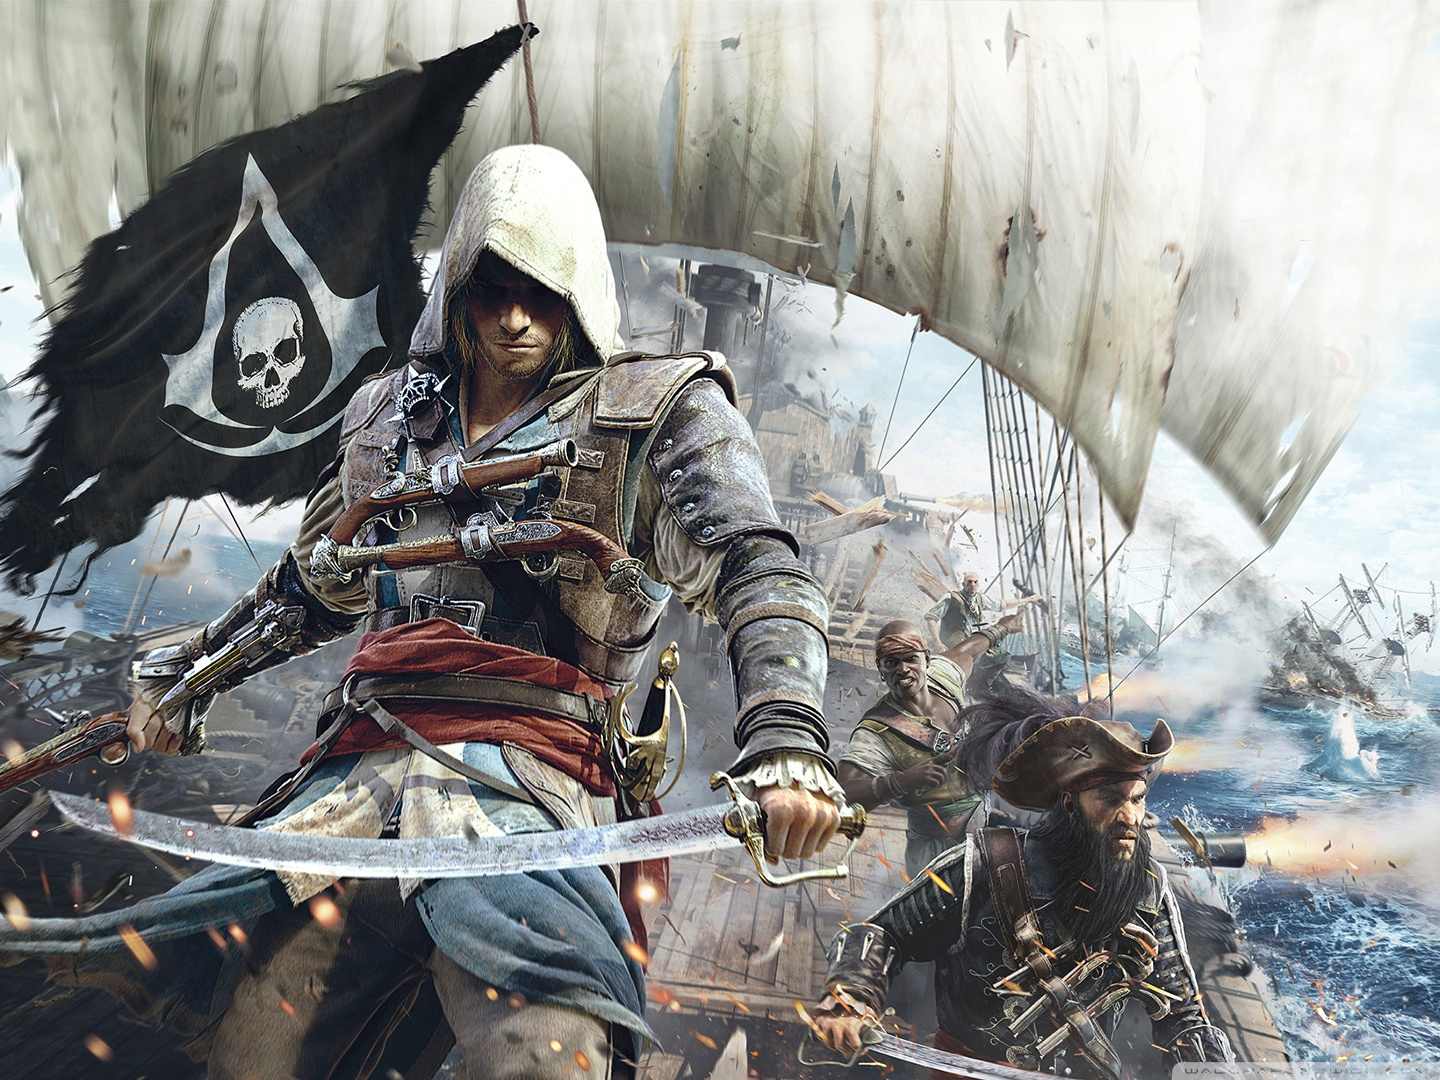 Assassins Creed Wallpaper Black Flag Zendha